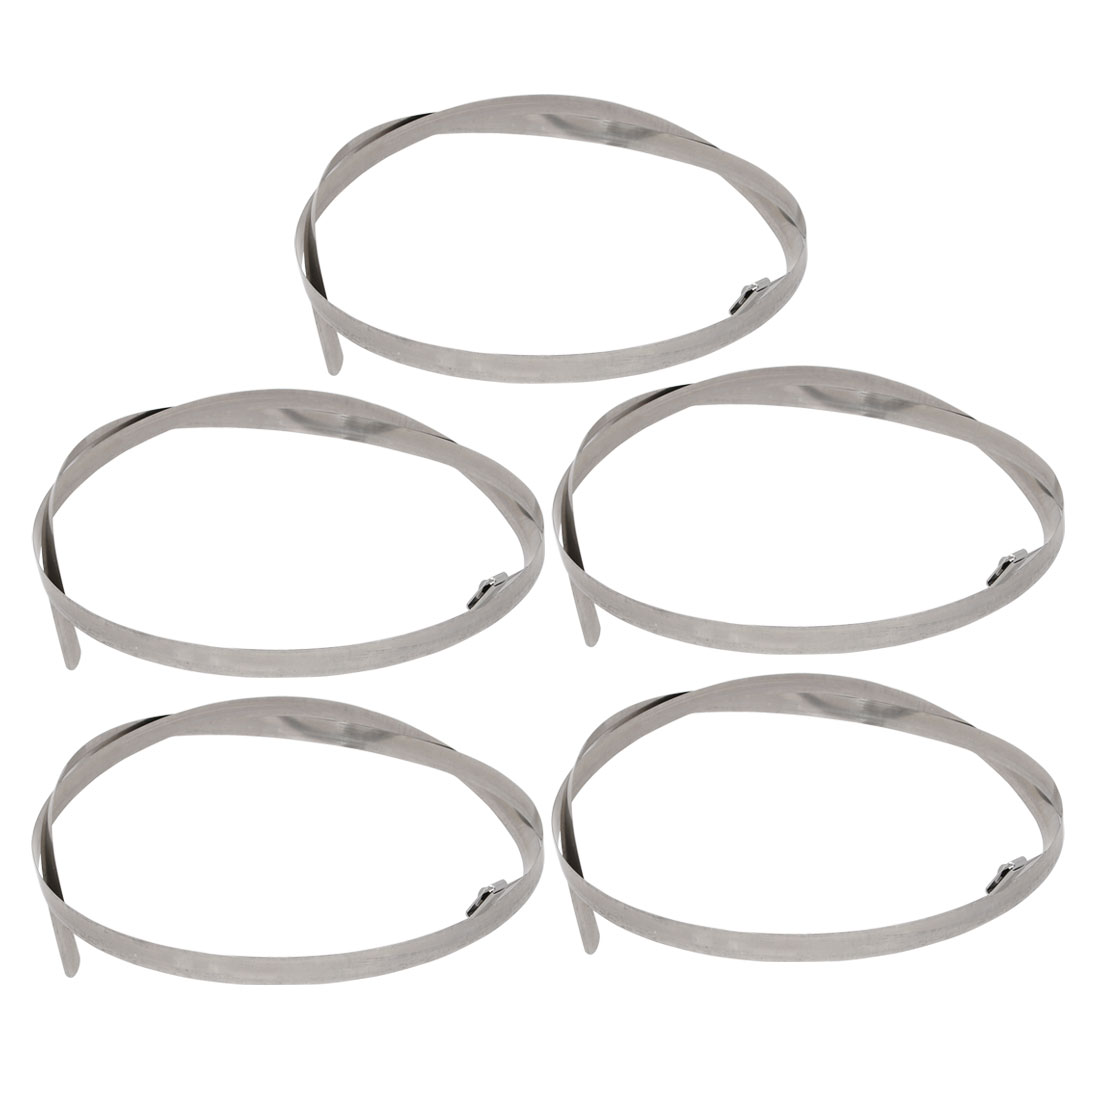 5pcs 12mm Width 1200mm Length Stainless Steel Cable Tie Wire Strap Silver Tone